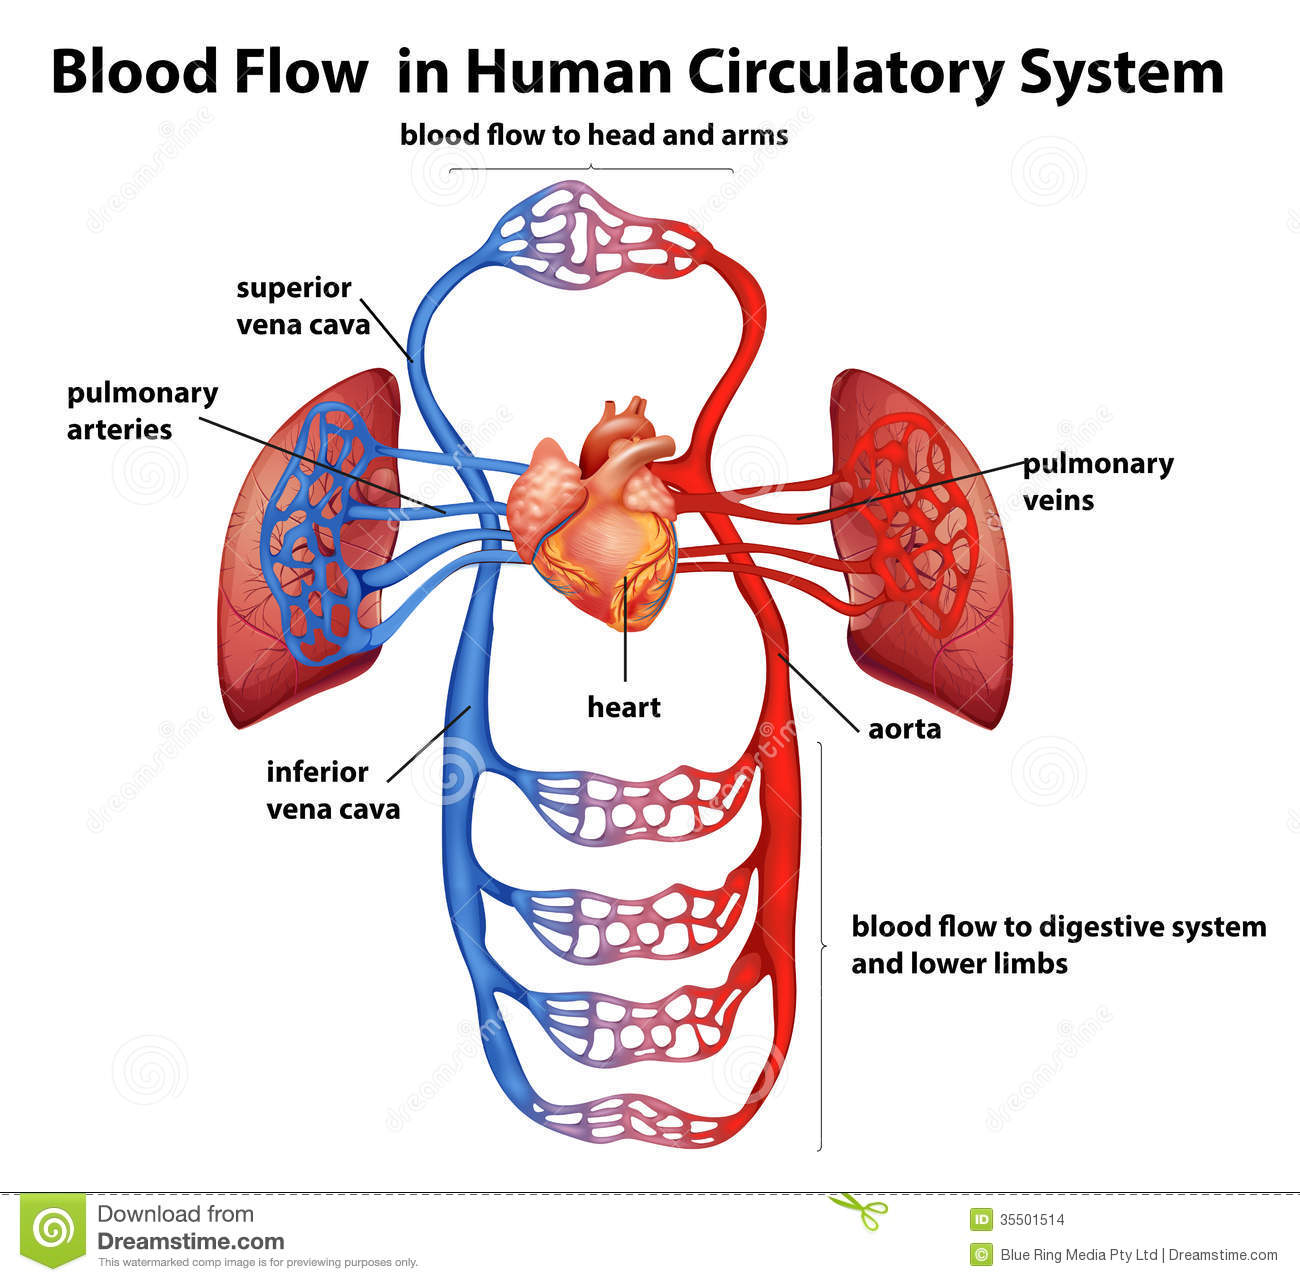 blood flow in human circulatory system stock images - image: 35501514, Human Body